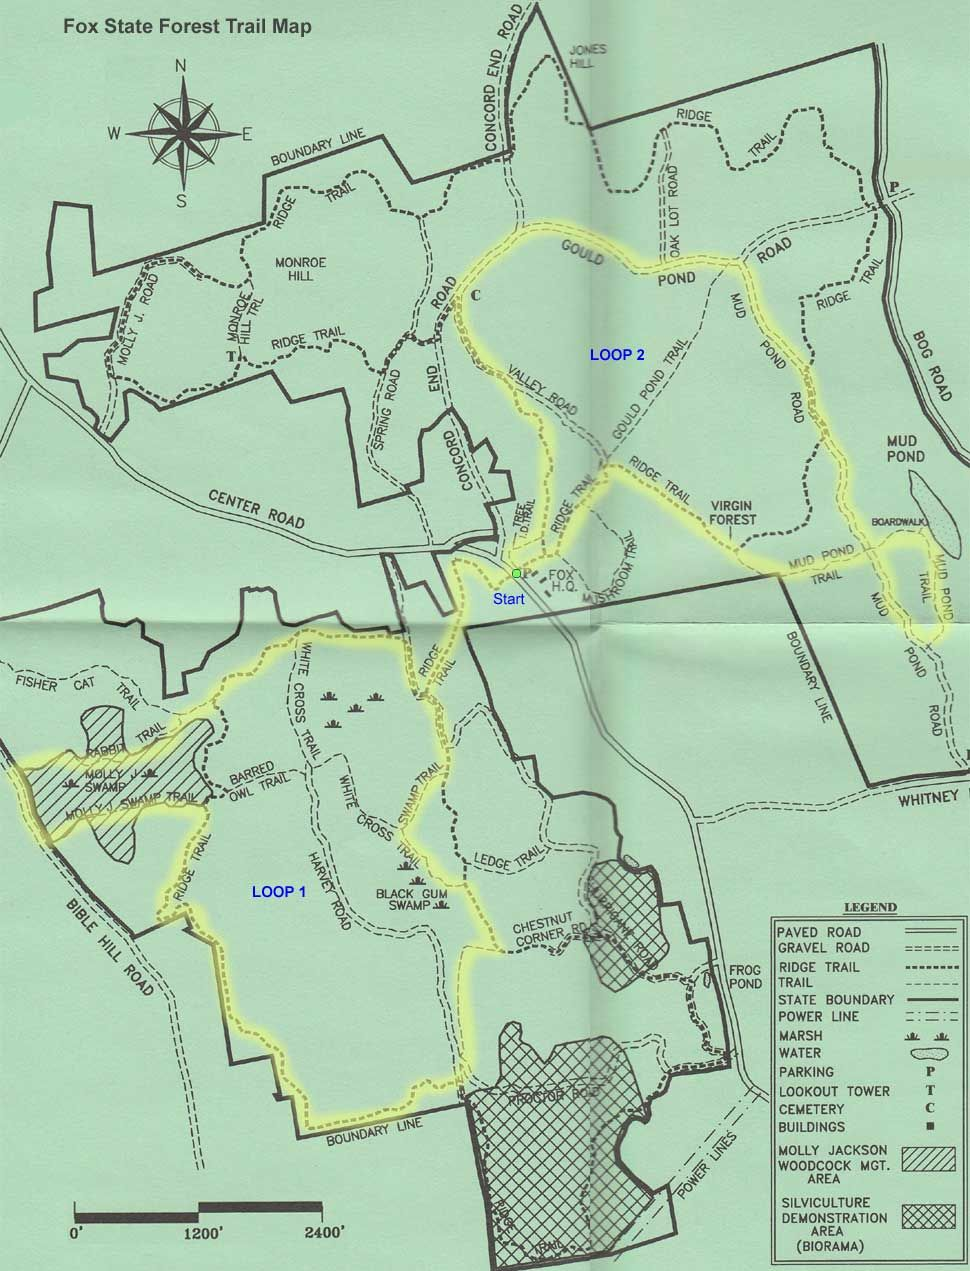 Trail map of hike route at Fox State Forest map courtesy of State